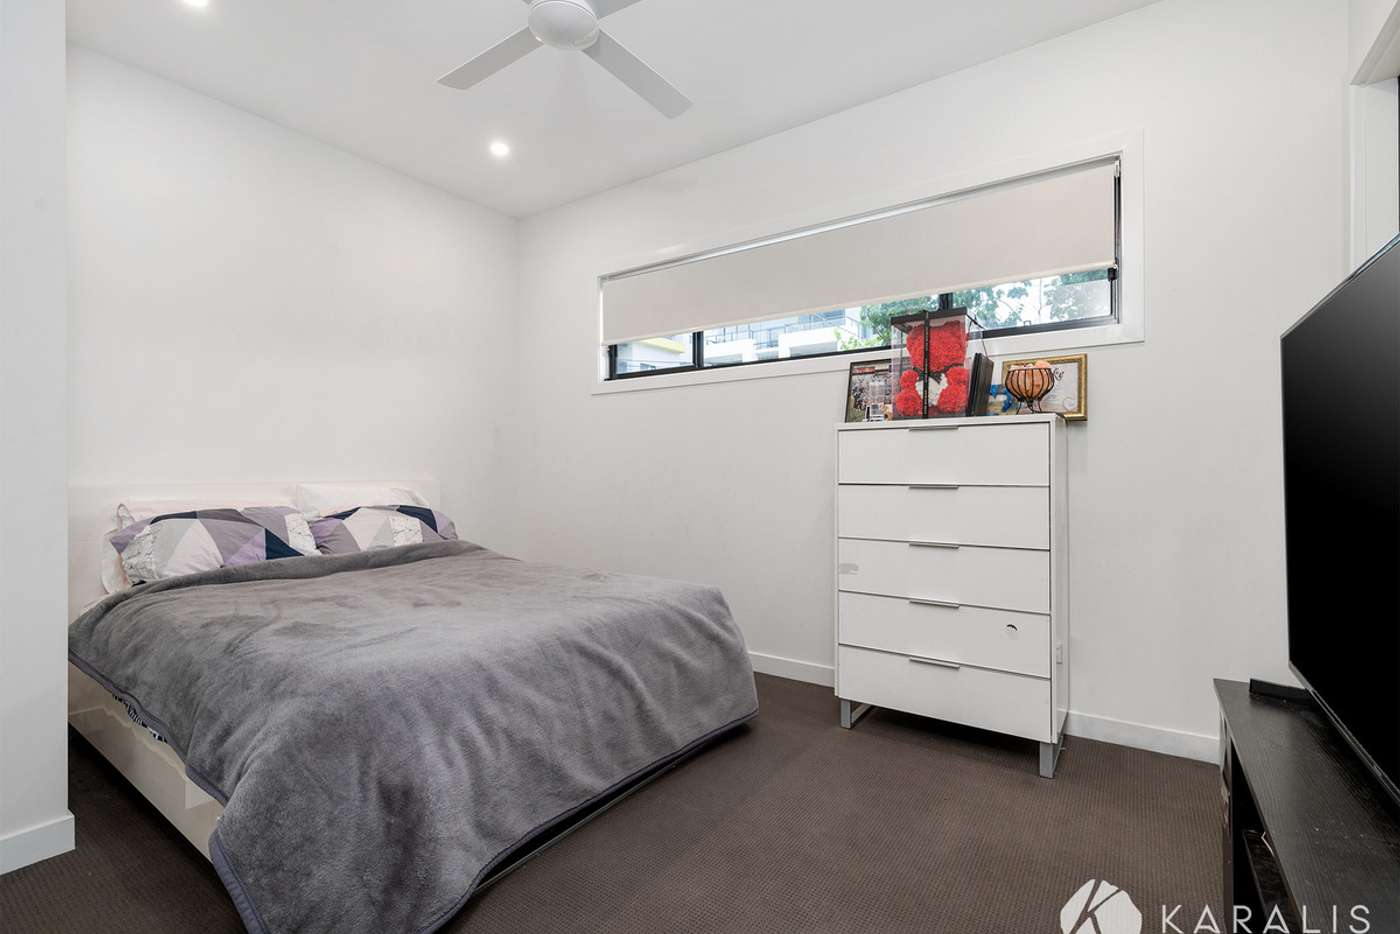 Sixth view of Homely house listing, 6a Raffles Street, Mount Gravatt East QLD 4122